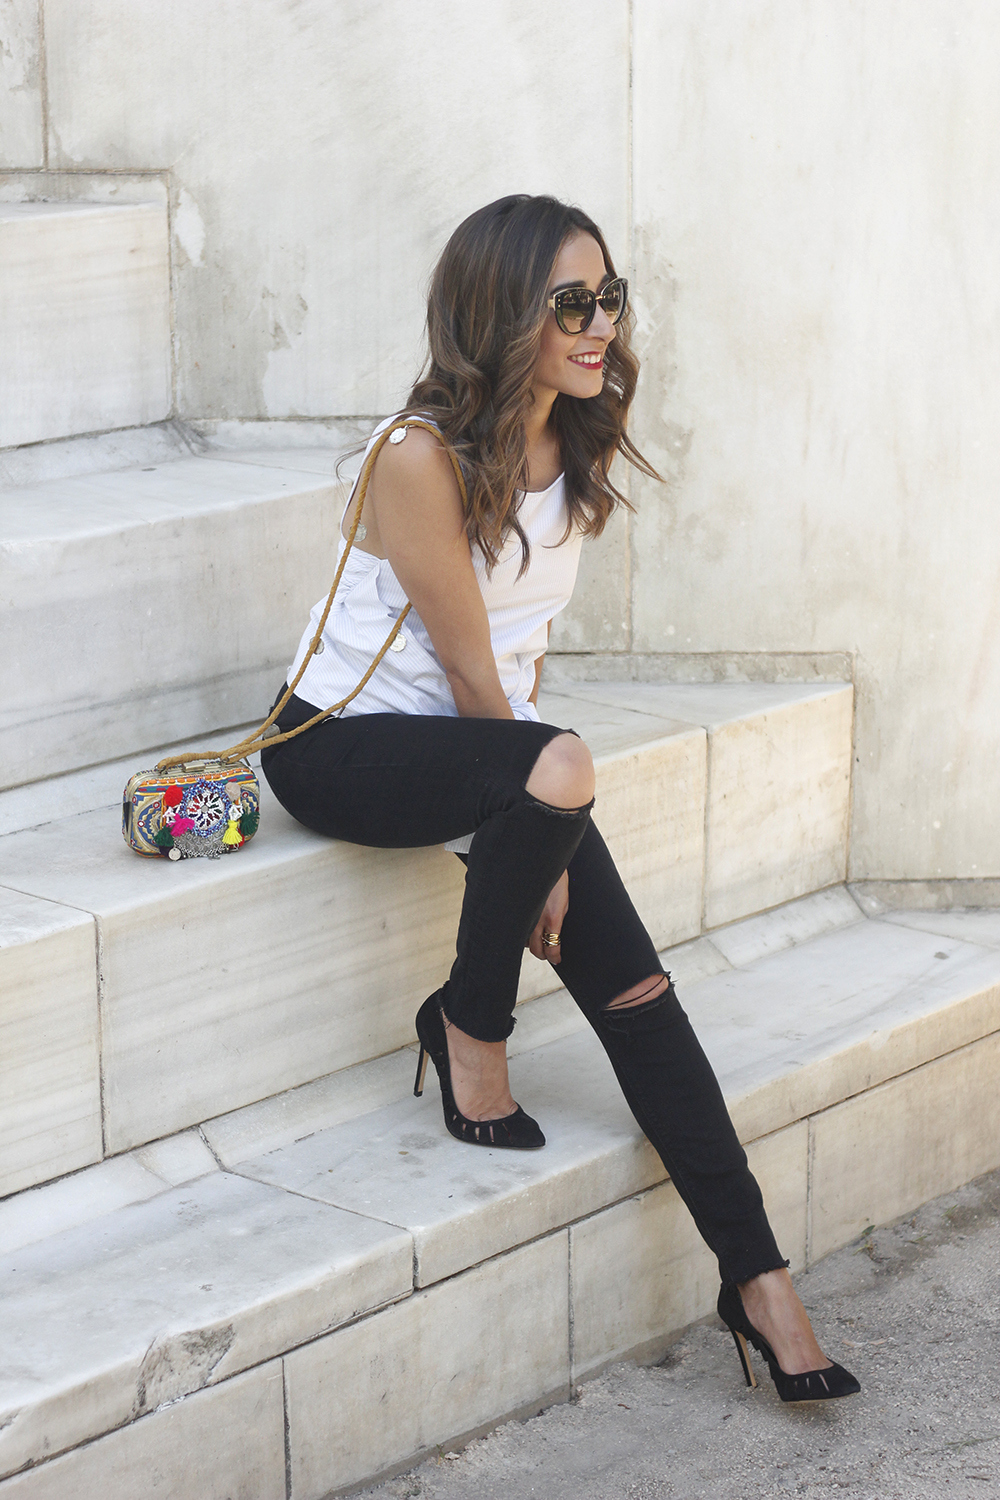 Knotted top black ripped jeans heels clutch sunnies summer outfit03